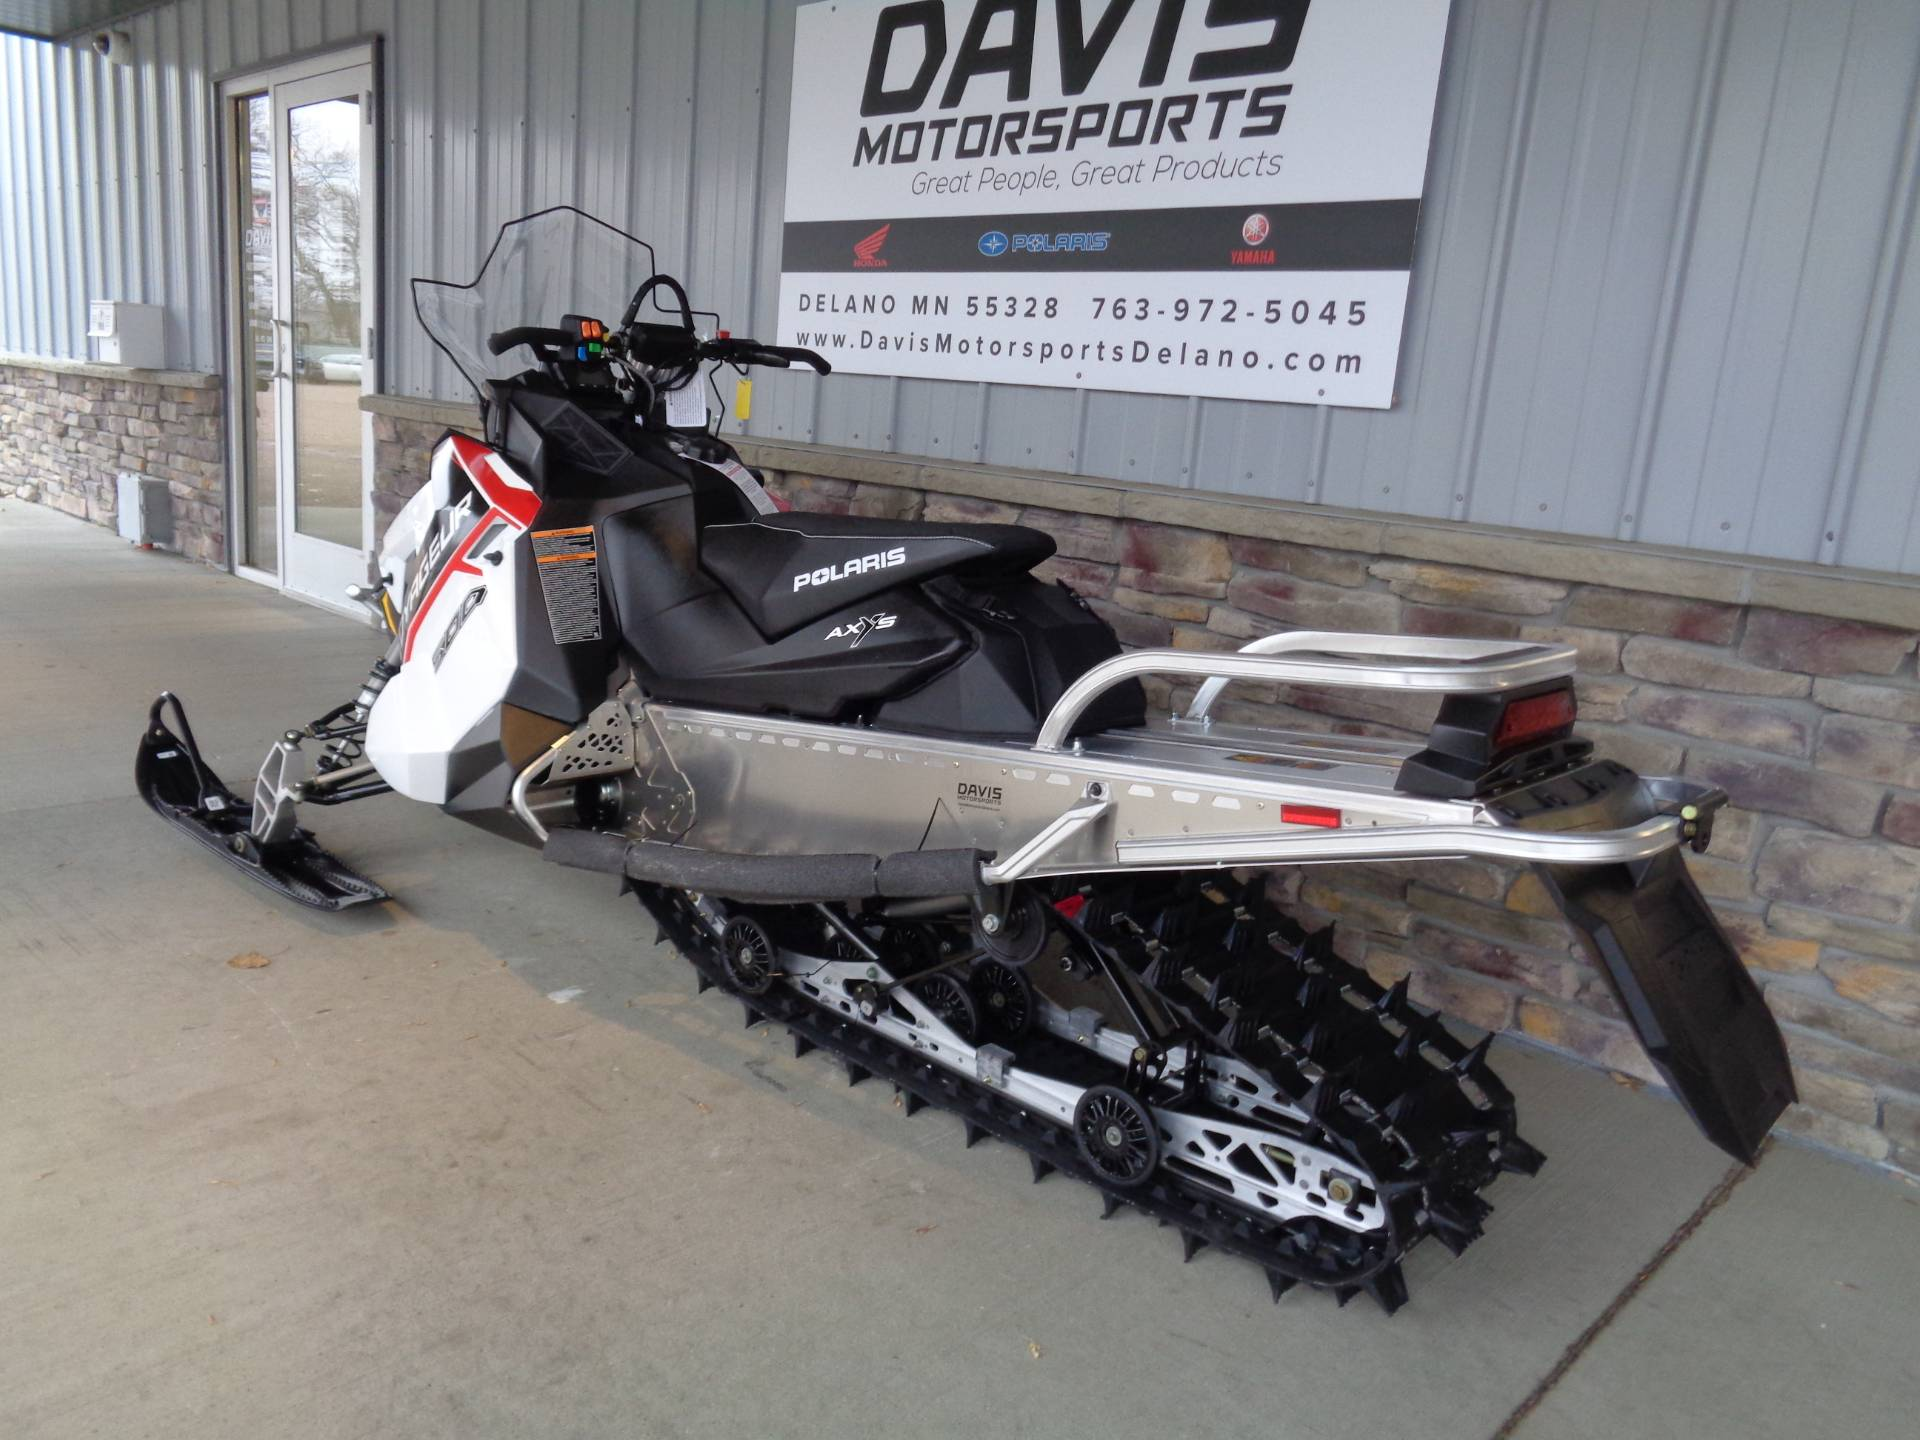 2021 Polaris 600 Voyageur 144 ES in Delano, Minnesota - Photo 6